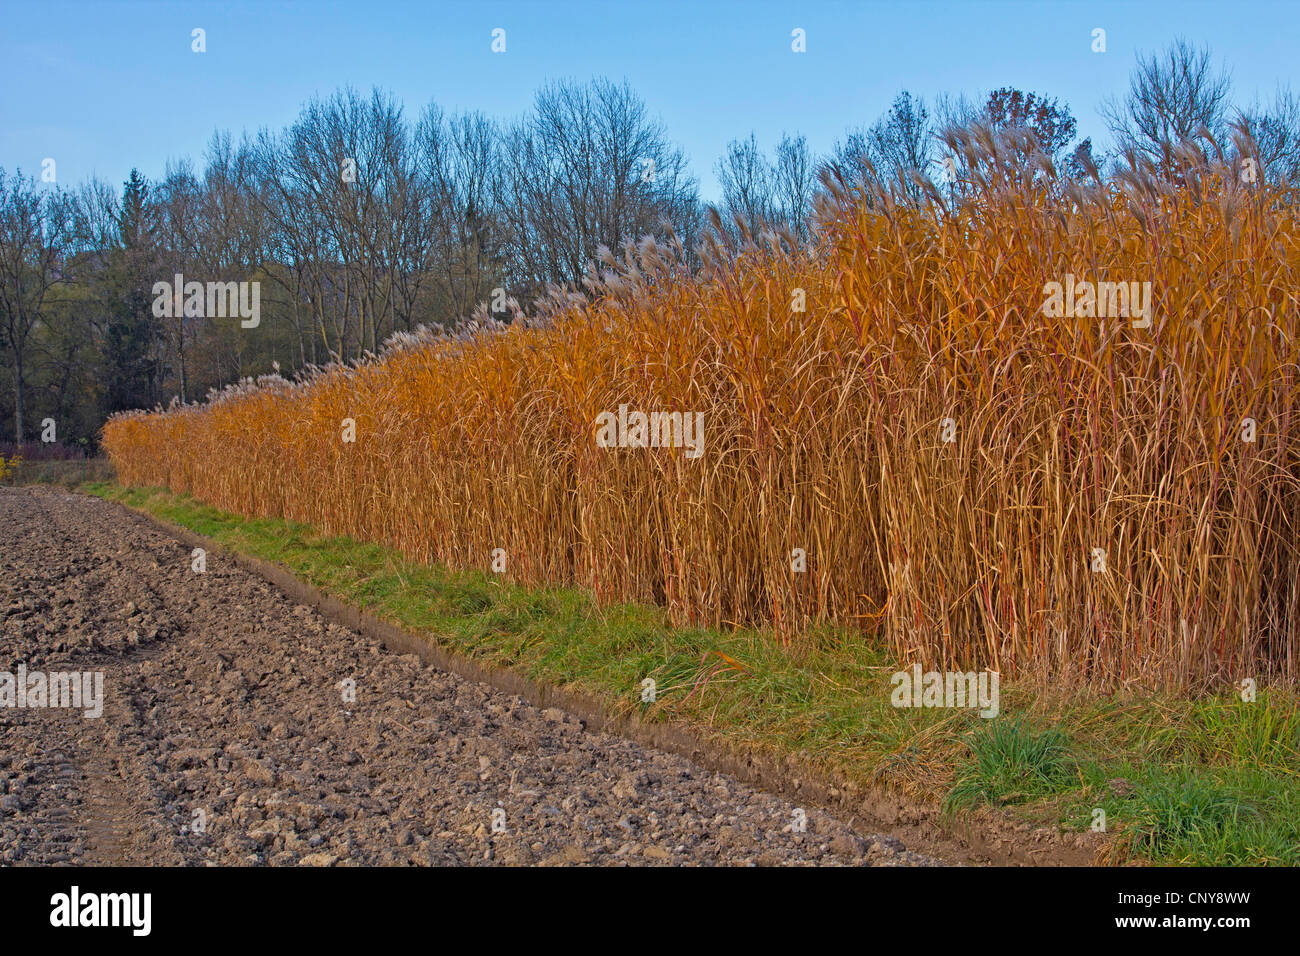 Giant Miscanthus (Miscanthus giganteus, Miscanthus x giganteus), cultivated for biomass production, Germany, Bavaria - Stock Image